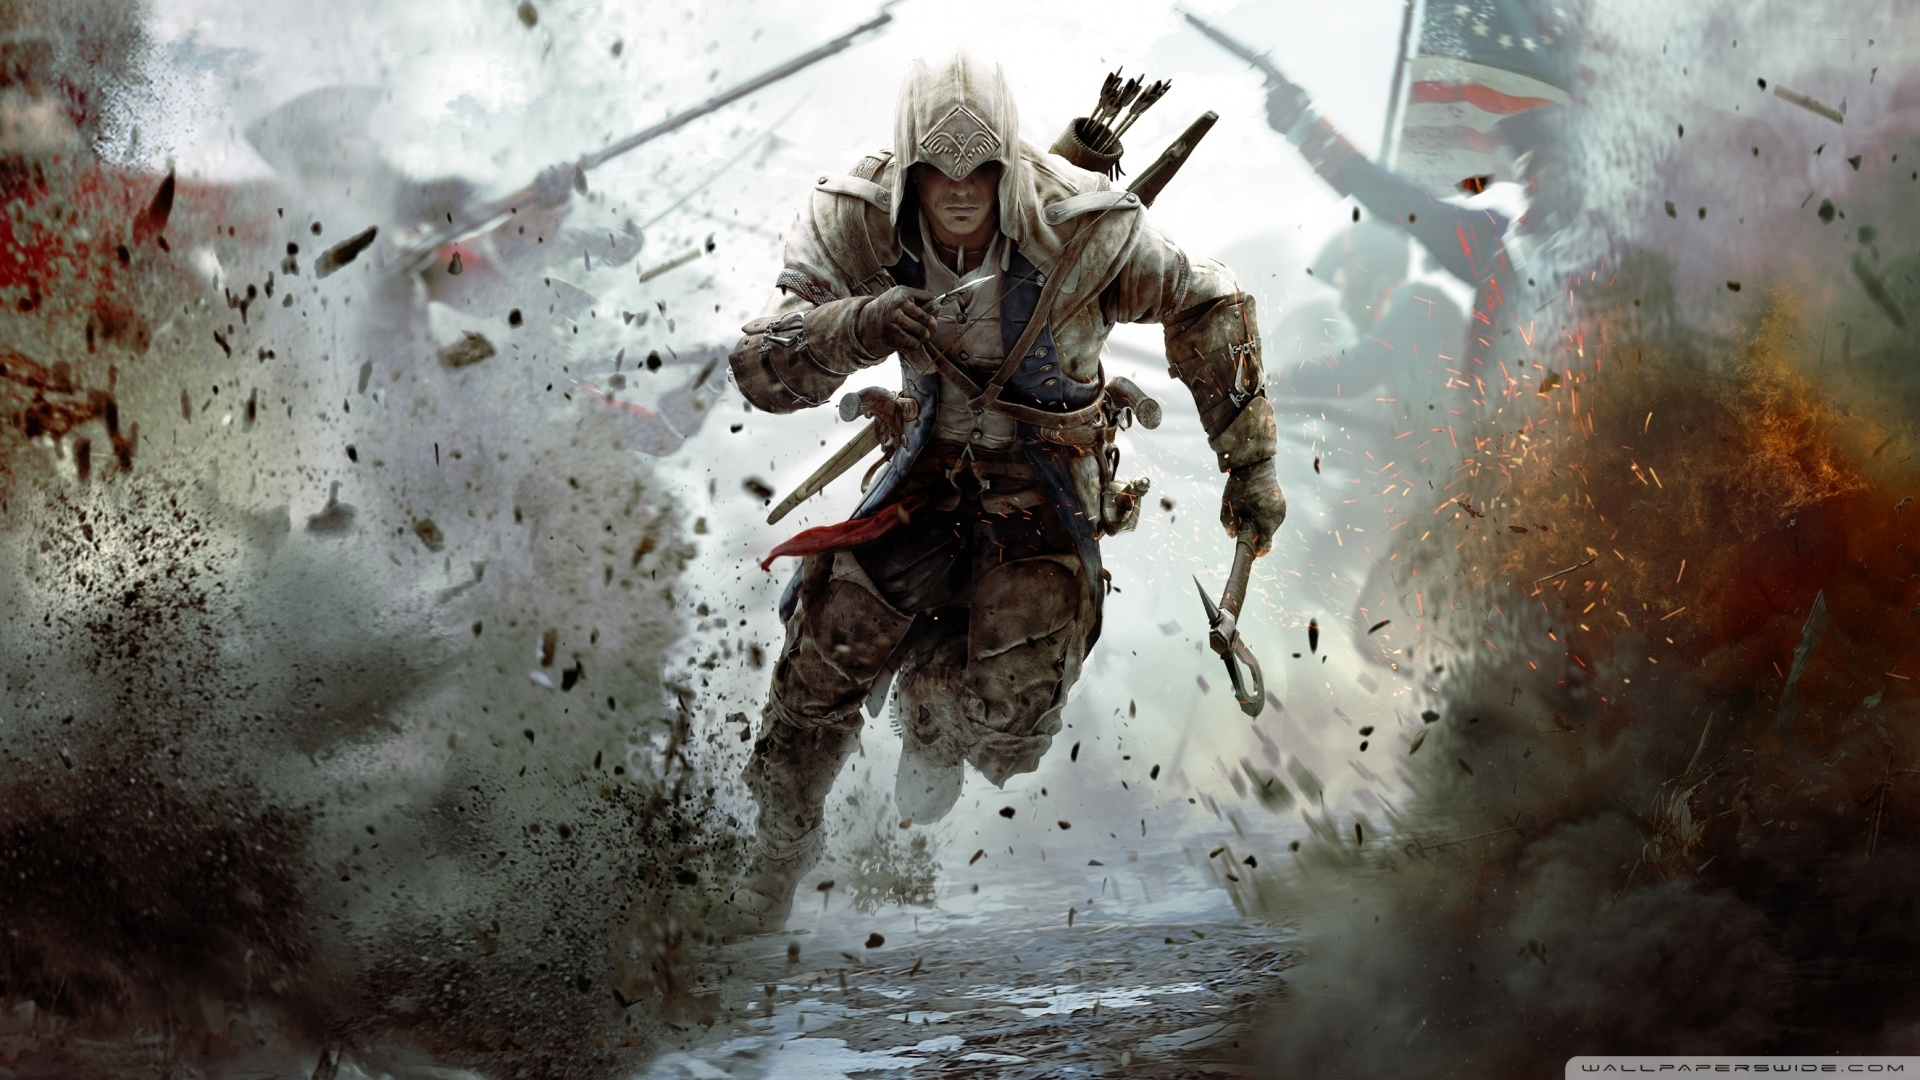 assassins creed 3 connor free running-wallpaper-1920x1080 - 10 000